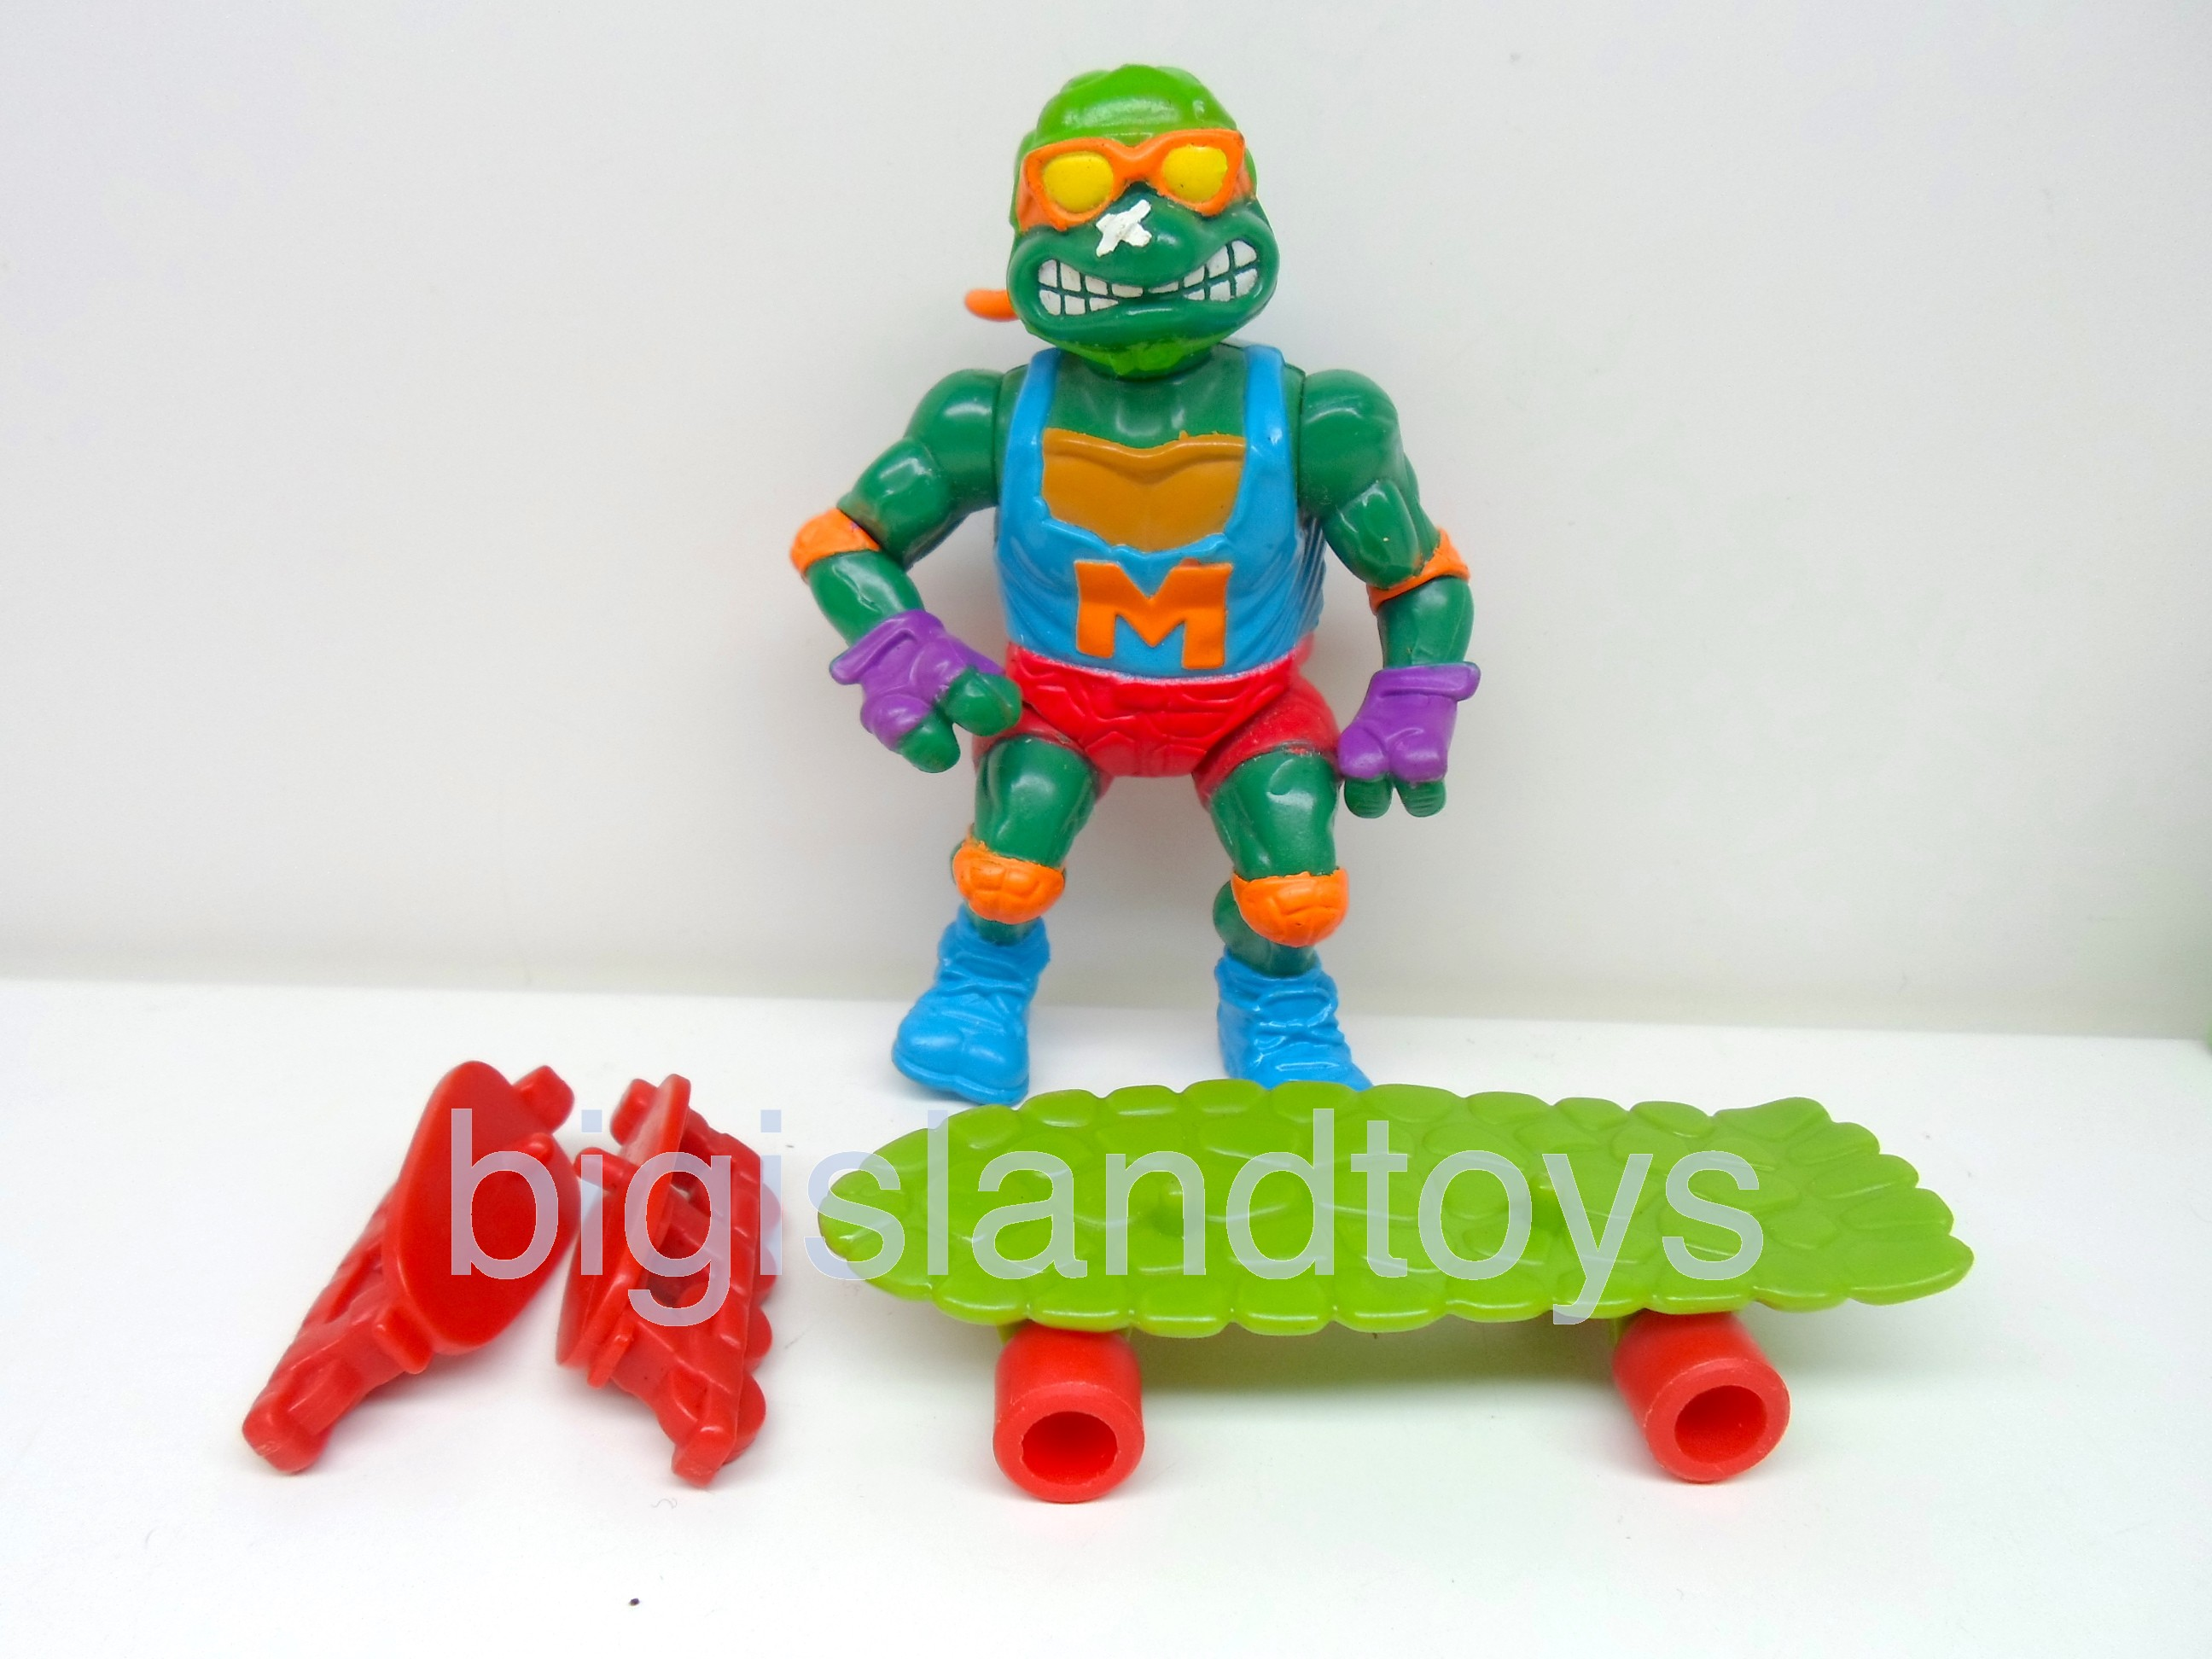 Teenage Mutant Ninja Turtles 1991 Figures   Skateboardin Mike